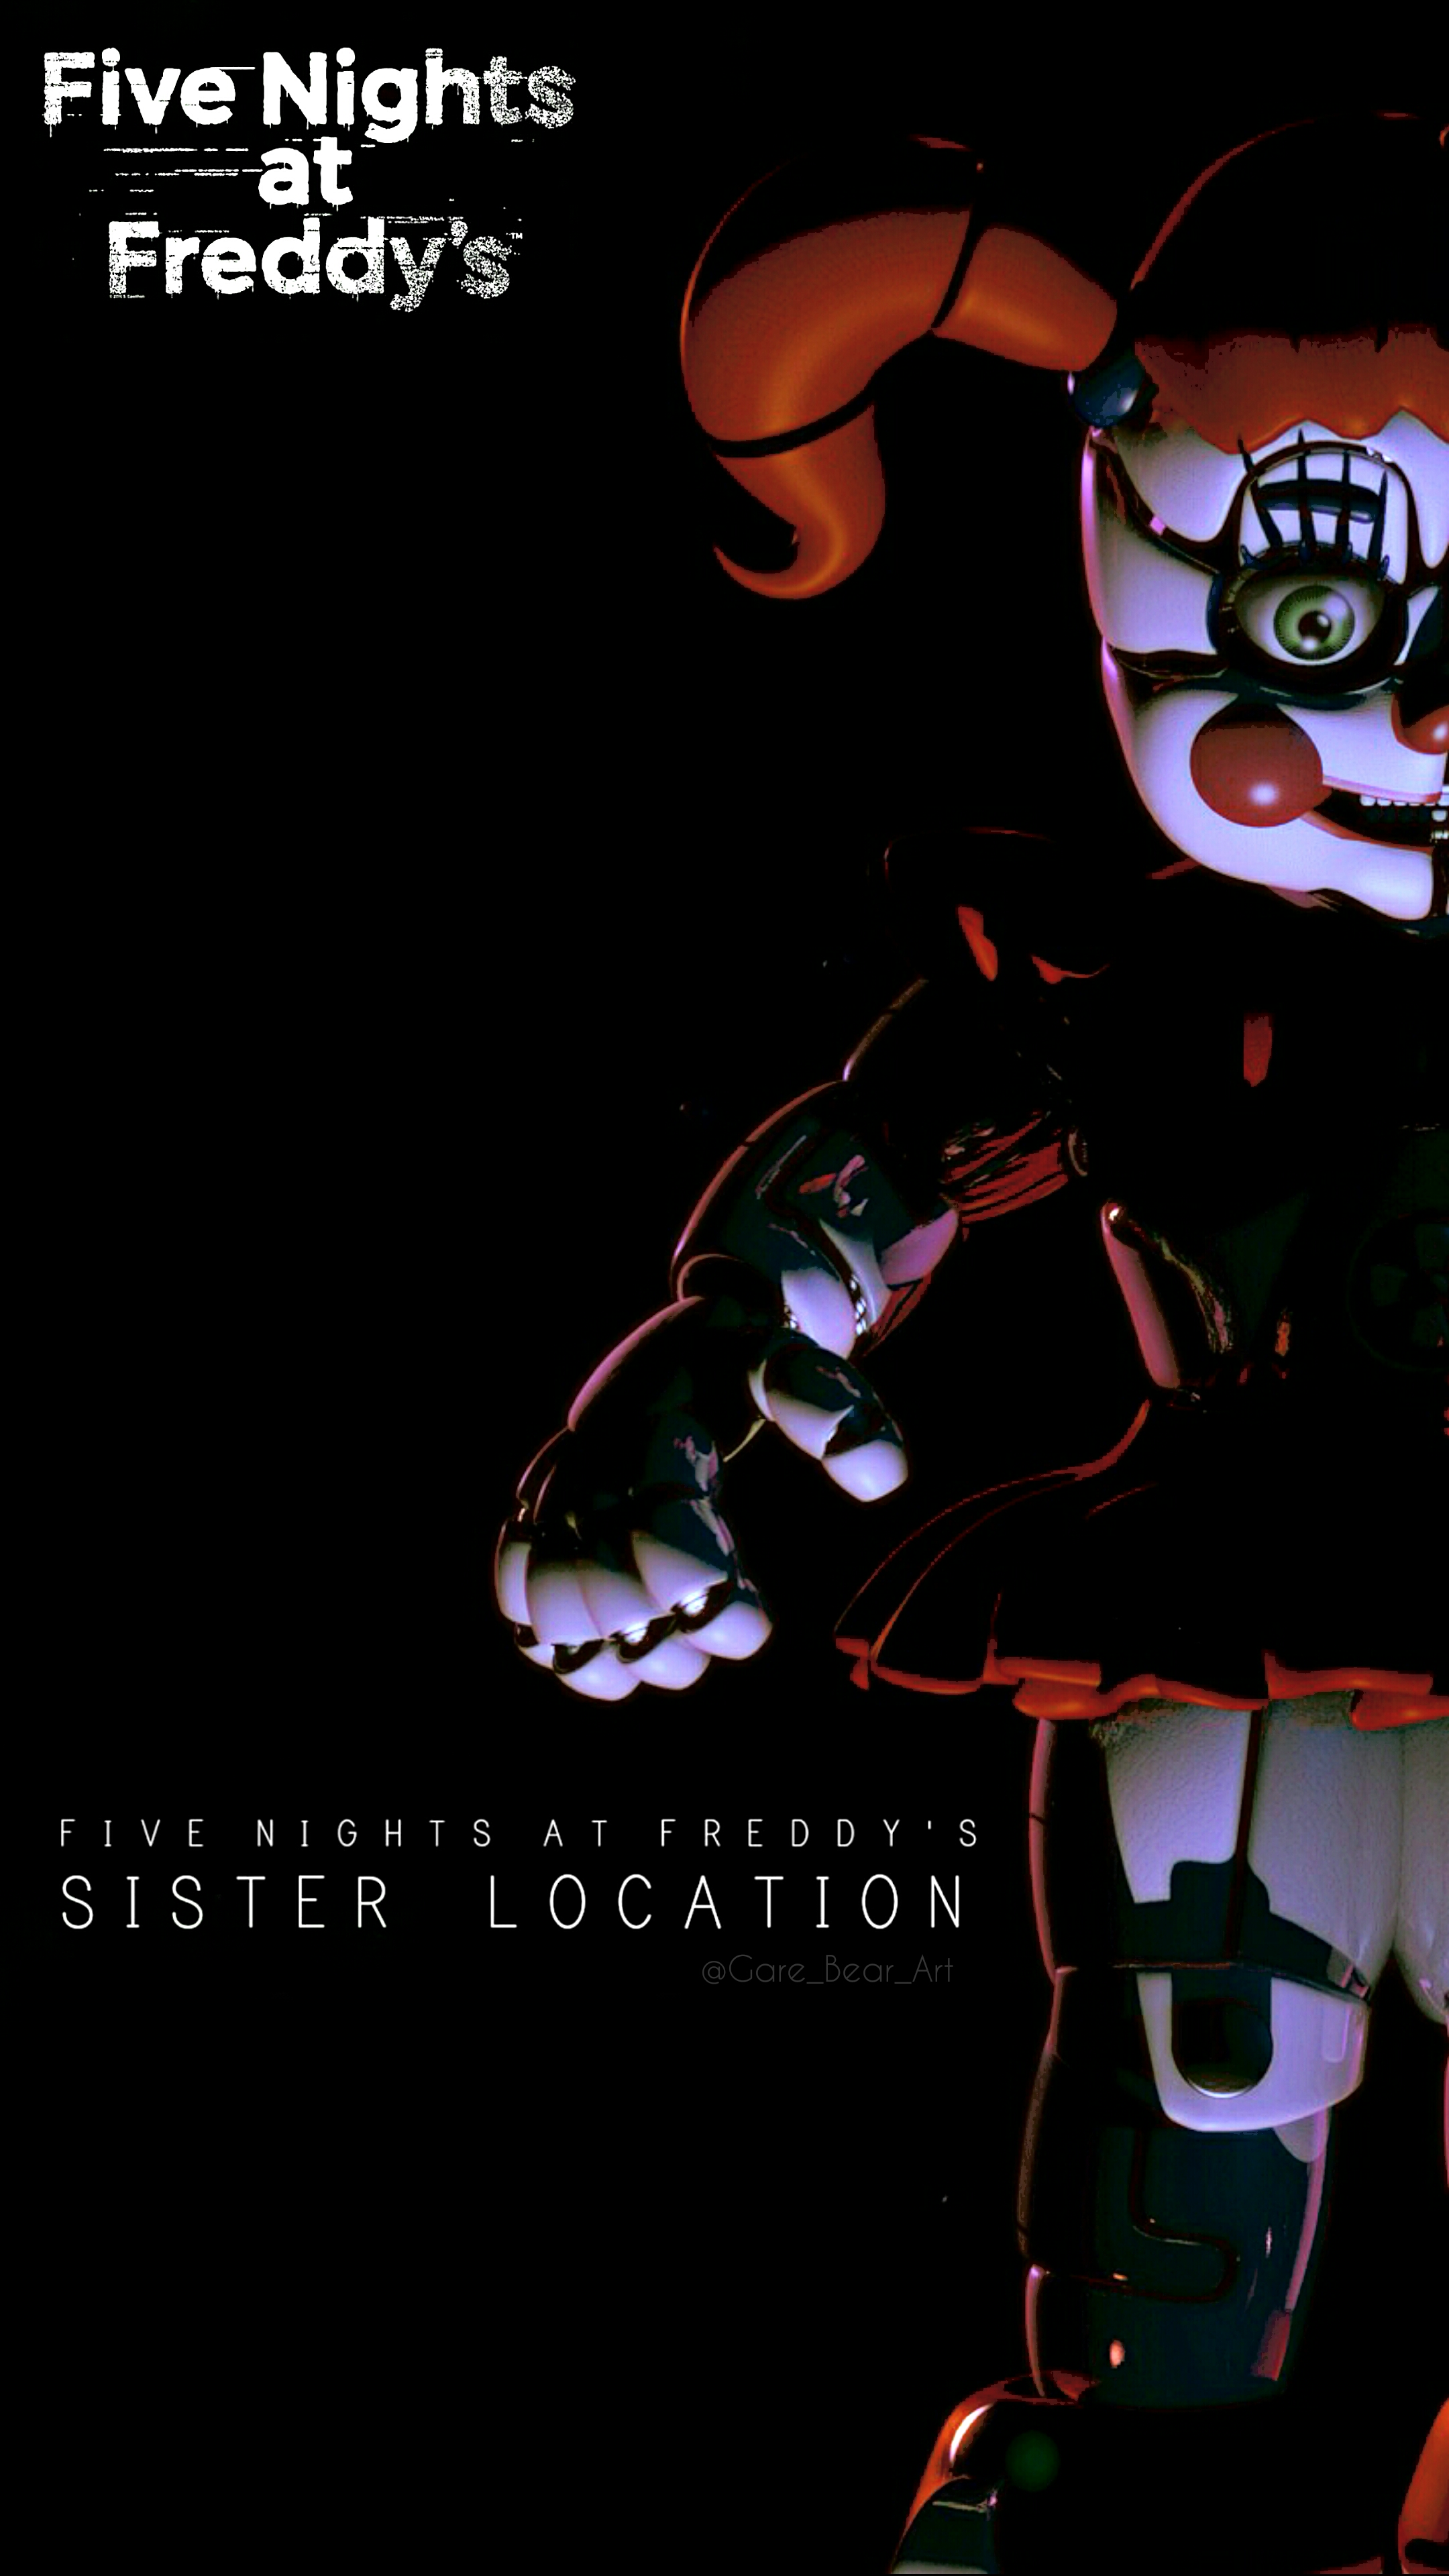 Fnaf Sister Location Wallpaper Baby By Garebearart1 On Deviantart